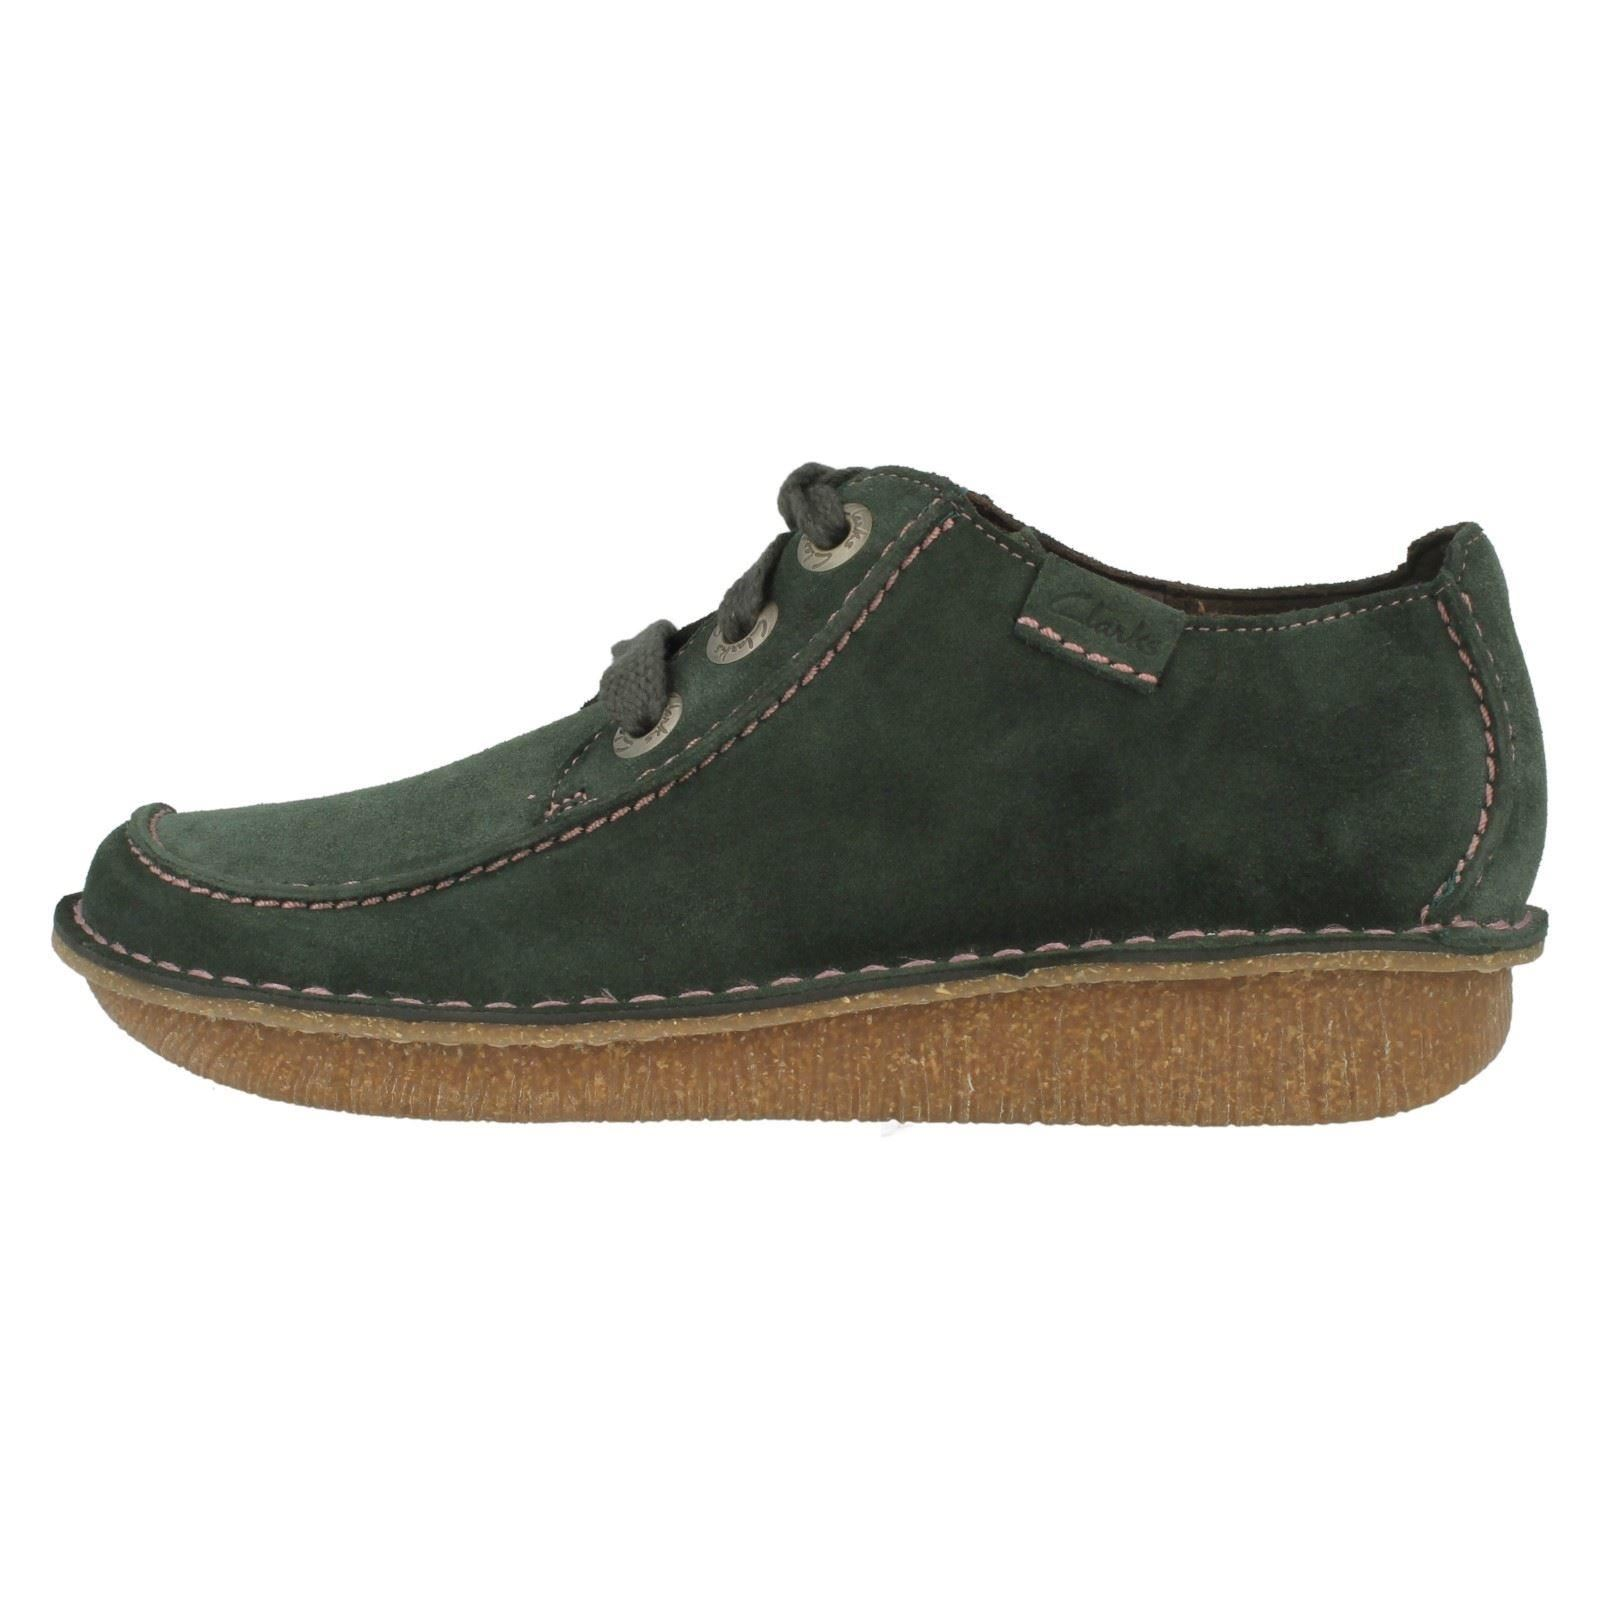 Ladies Clarks Artisan Suede Shoes Size